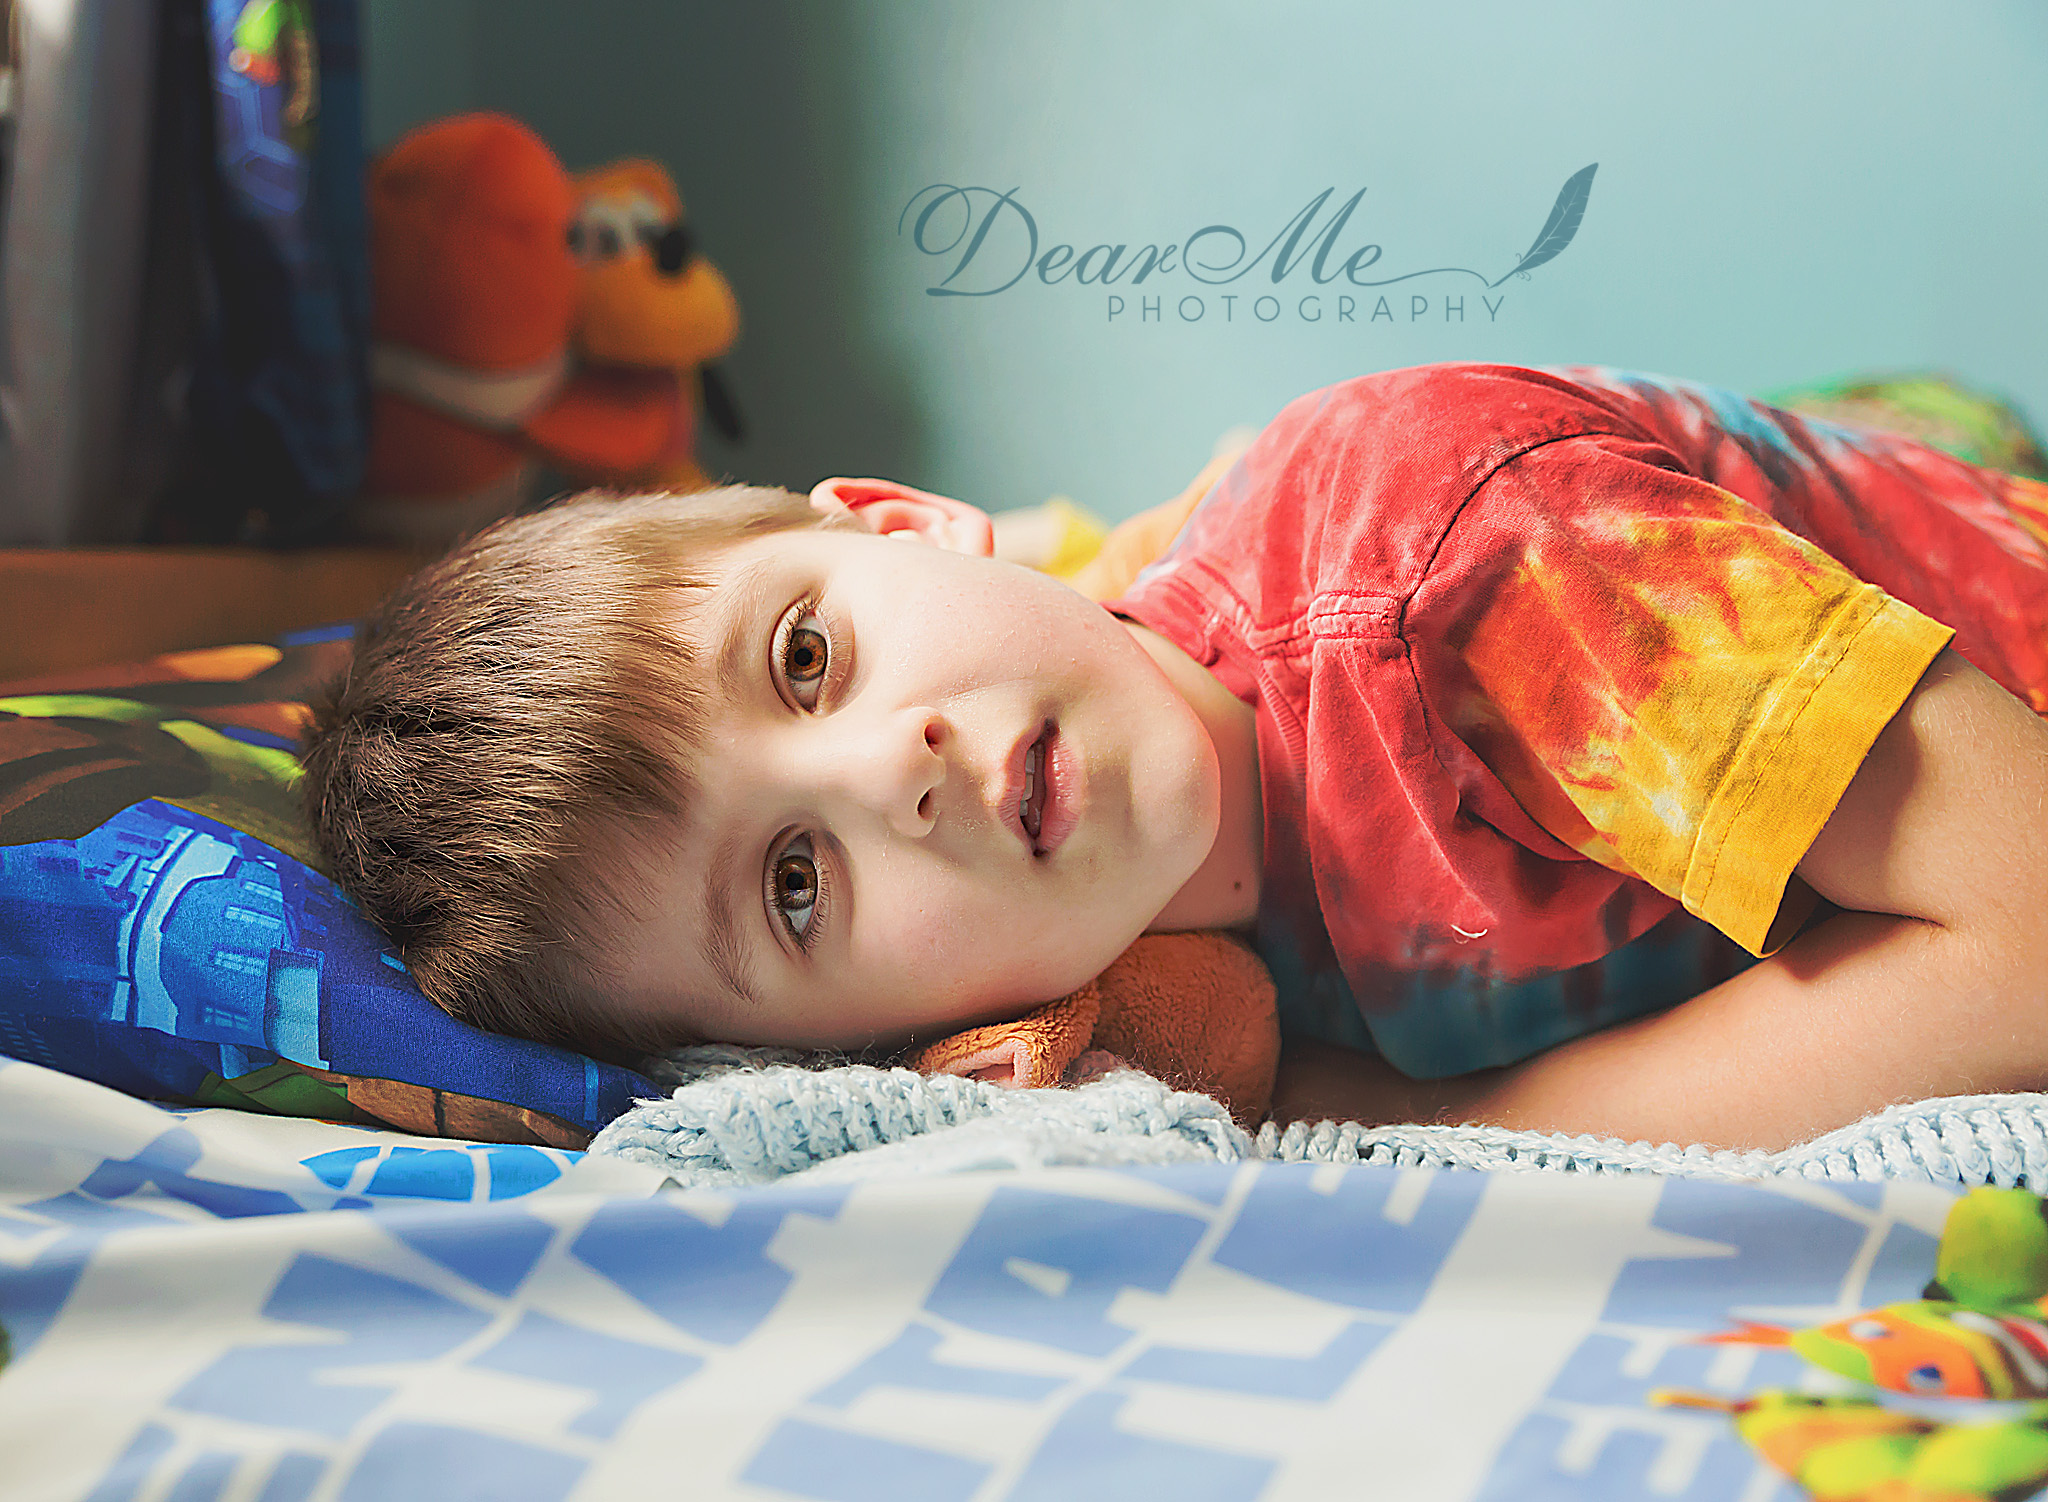 dear me photography bismarck faces of autism young boy laying down with serious expression